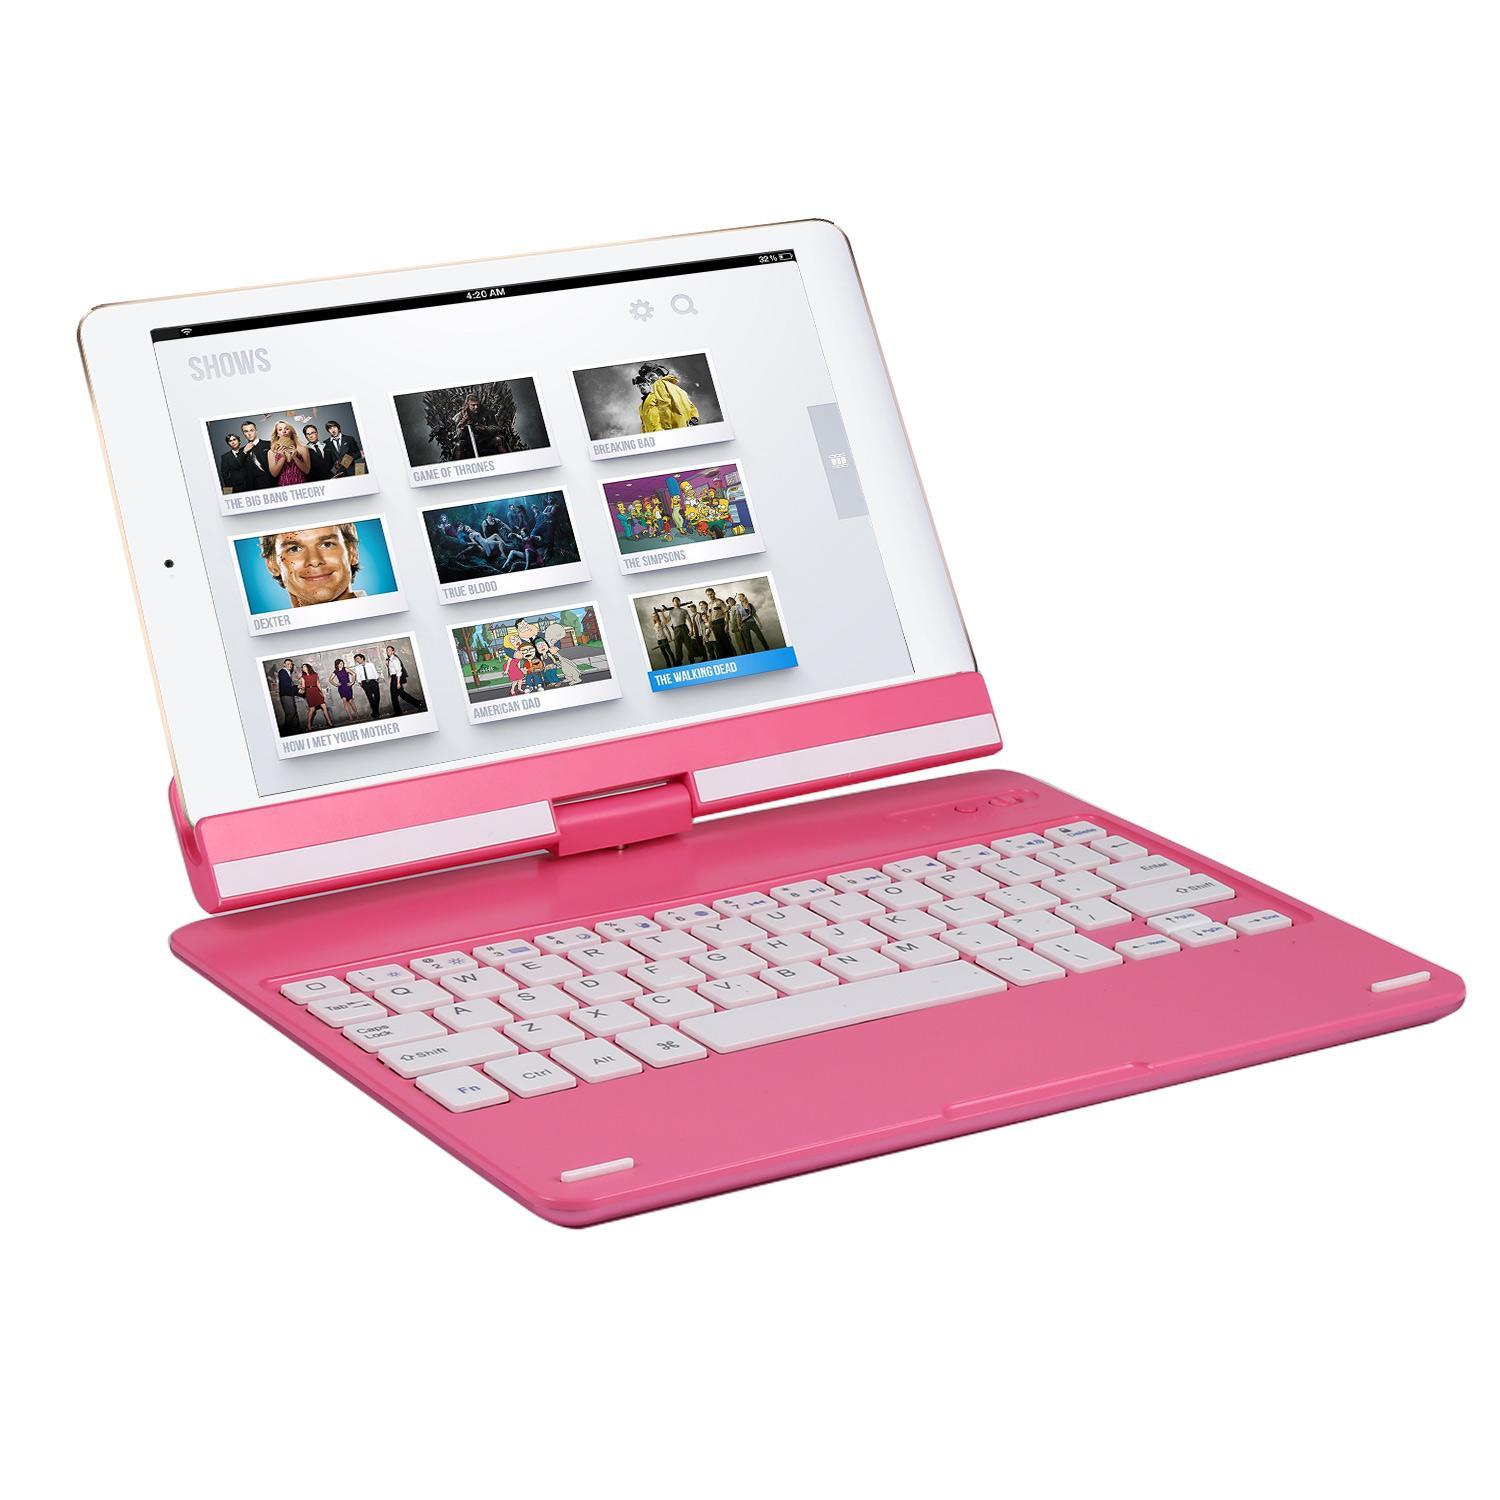 Wireless Bluetooth Keyboard With 360° Rotatable Stand for 9.7inch iPad Air IOS/Andr oid Tablet HITC